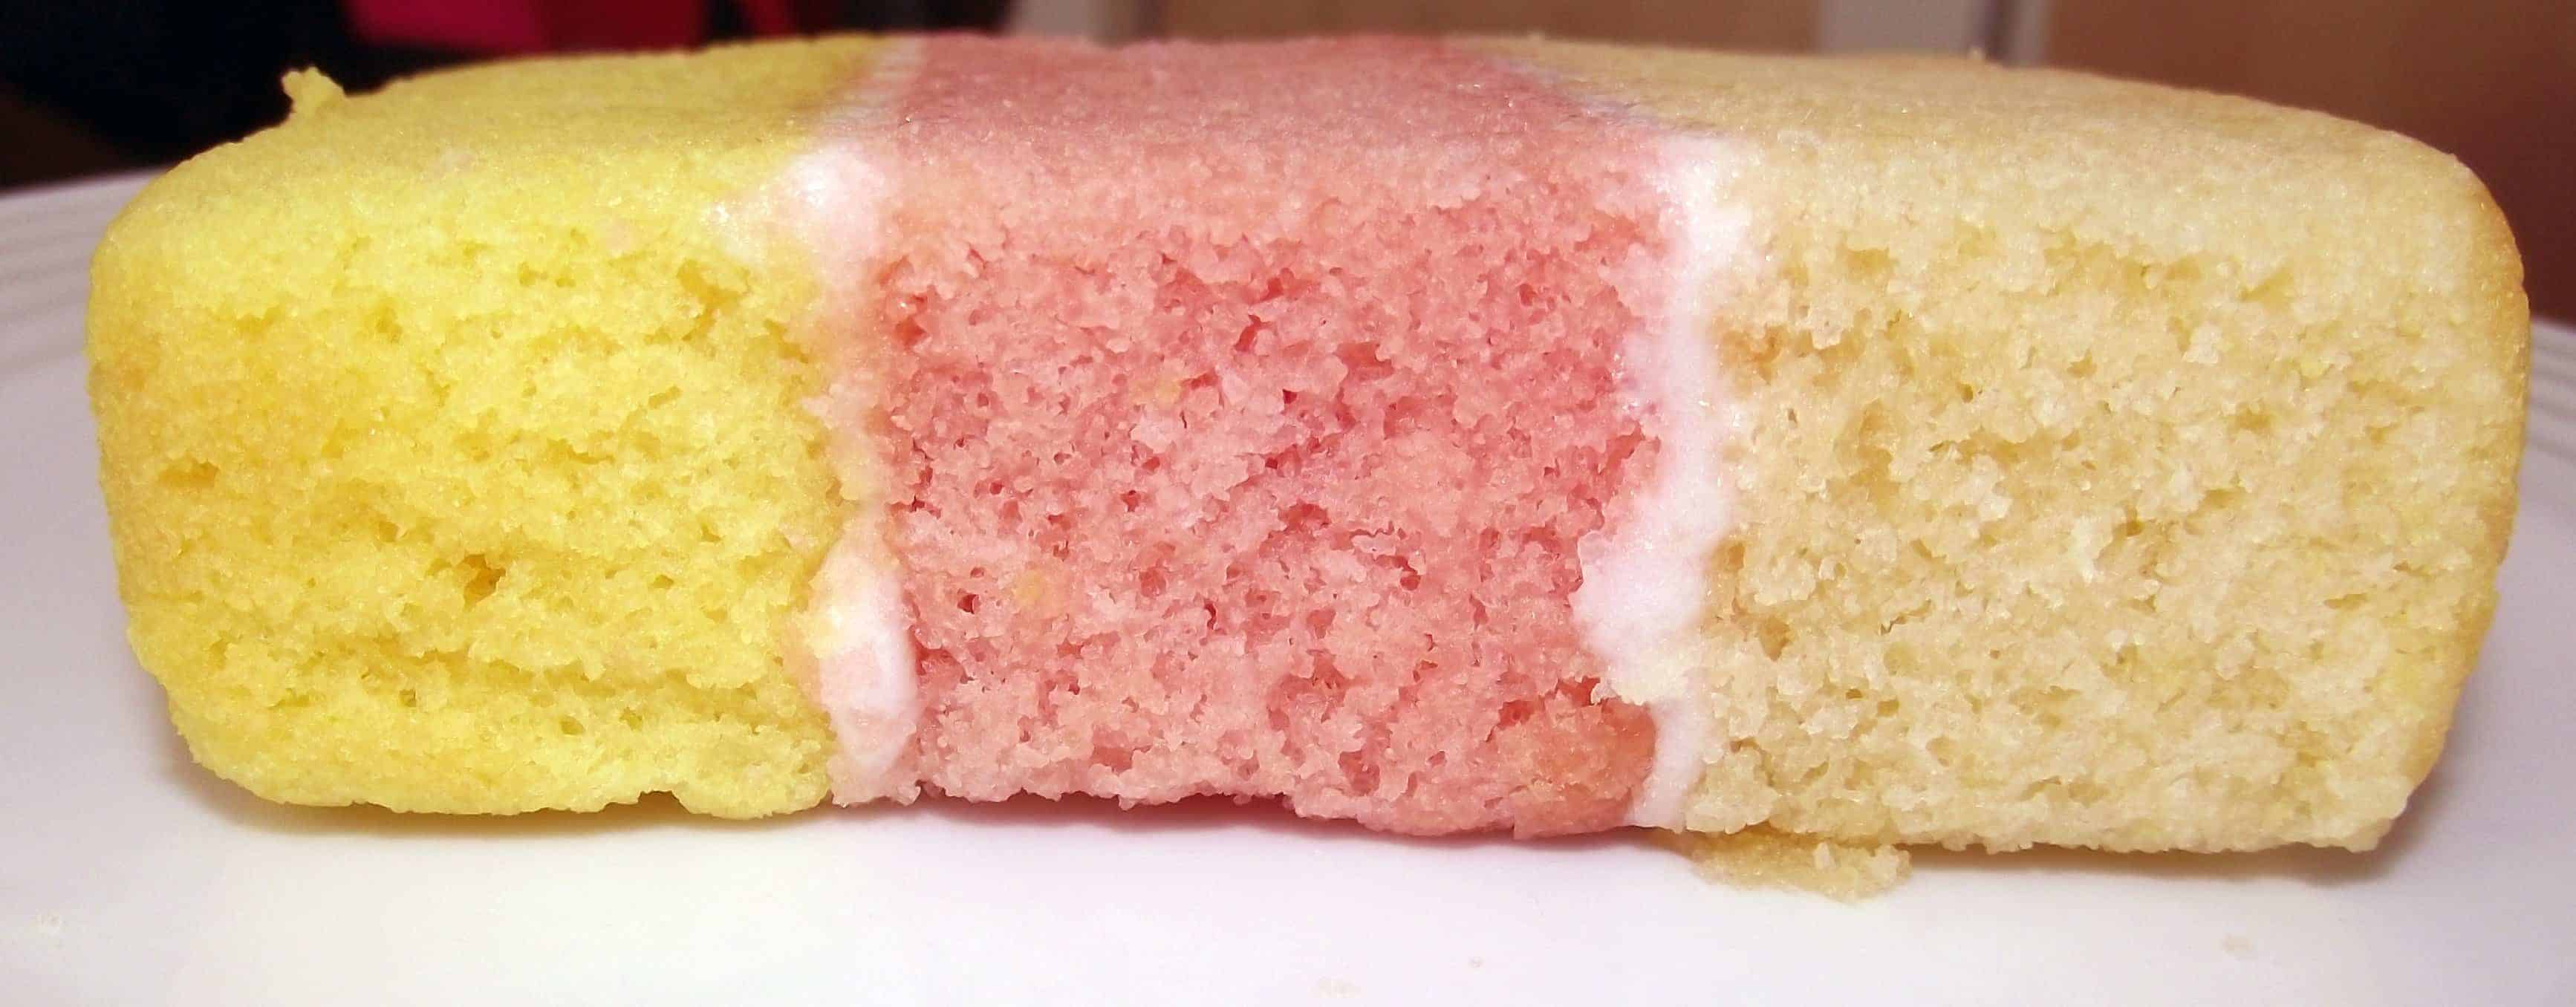 Gluten Free Angel Cake A Heavenly Idea The Gluten Free